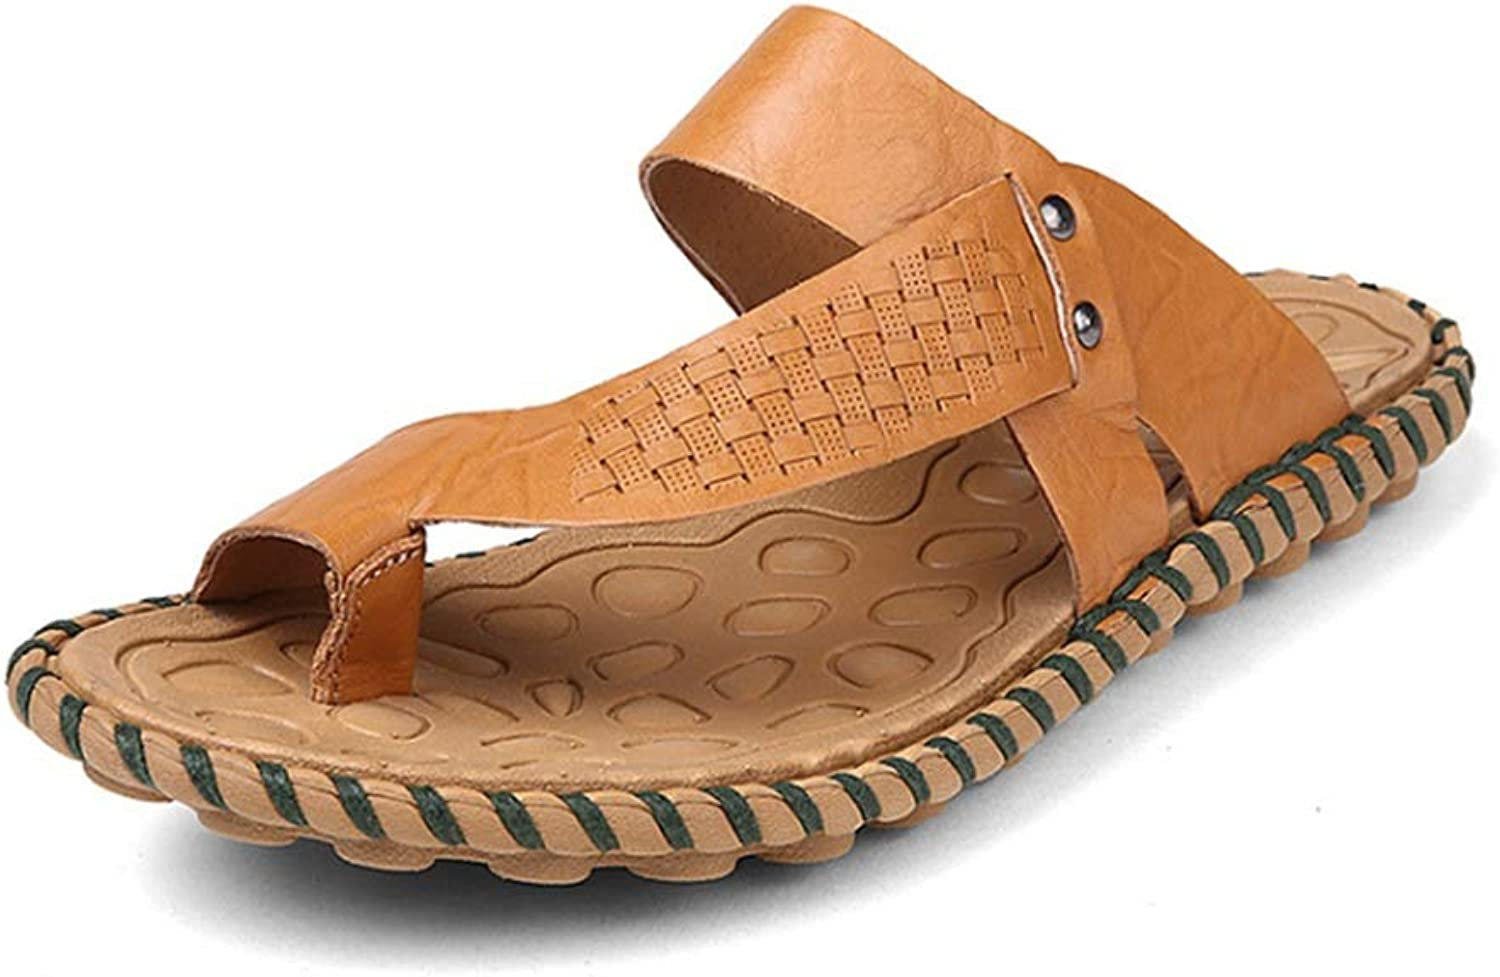 Slippers Summer Men's Outdoor Sports Leather Sandals Non-Slip Beach shoes Anti-Skid Breathable